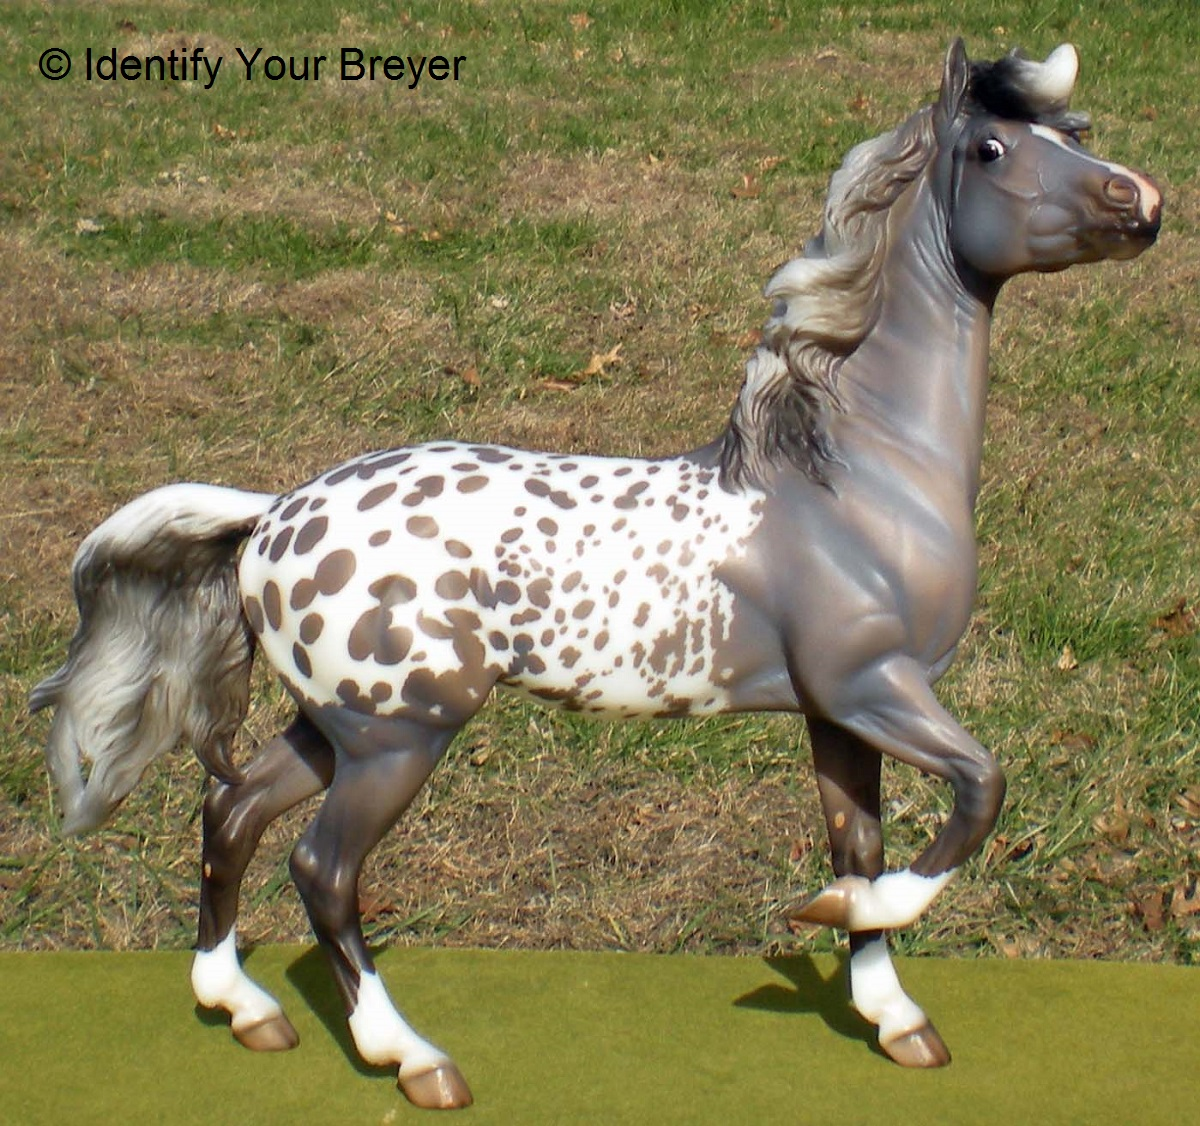 identify your breyer mustang mare